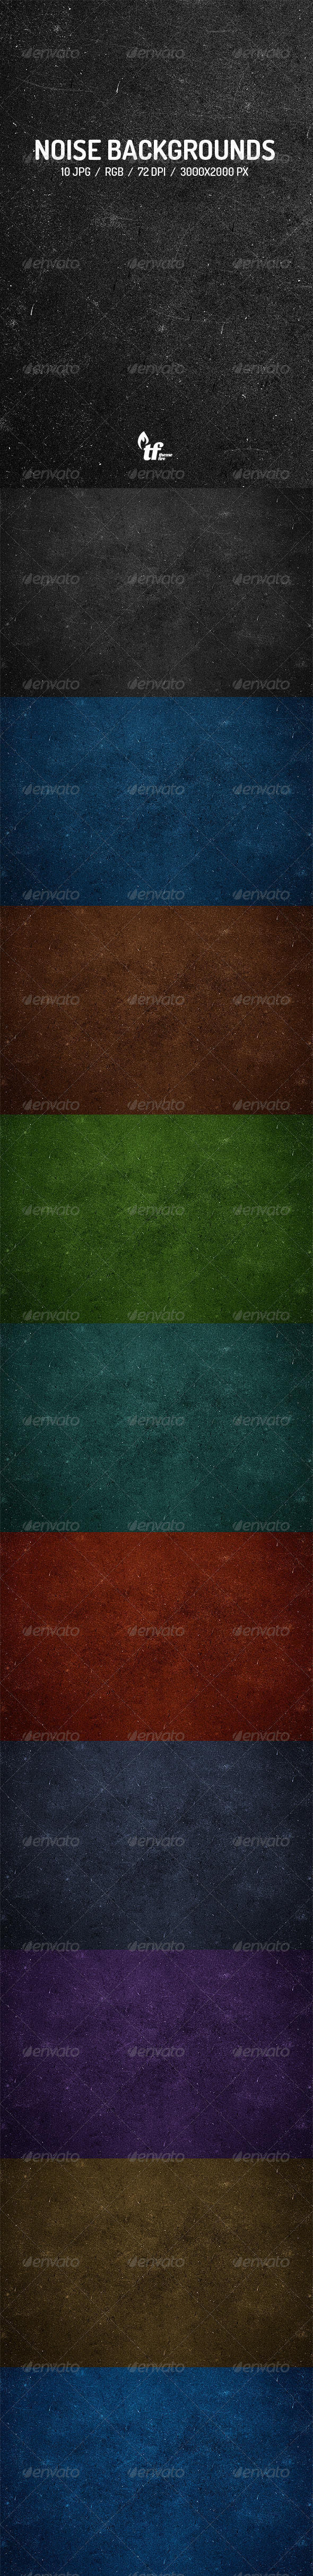 GraphicRiver Noise Backgrounds 7803956